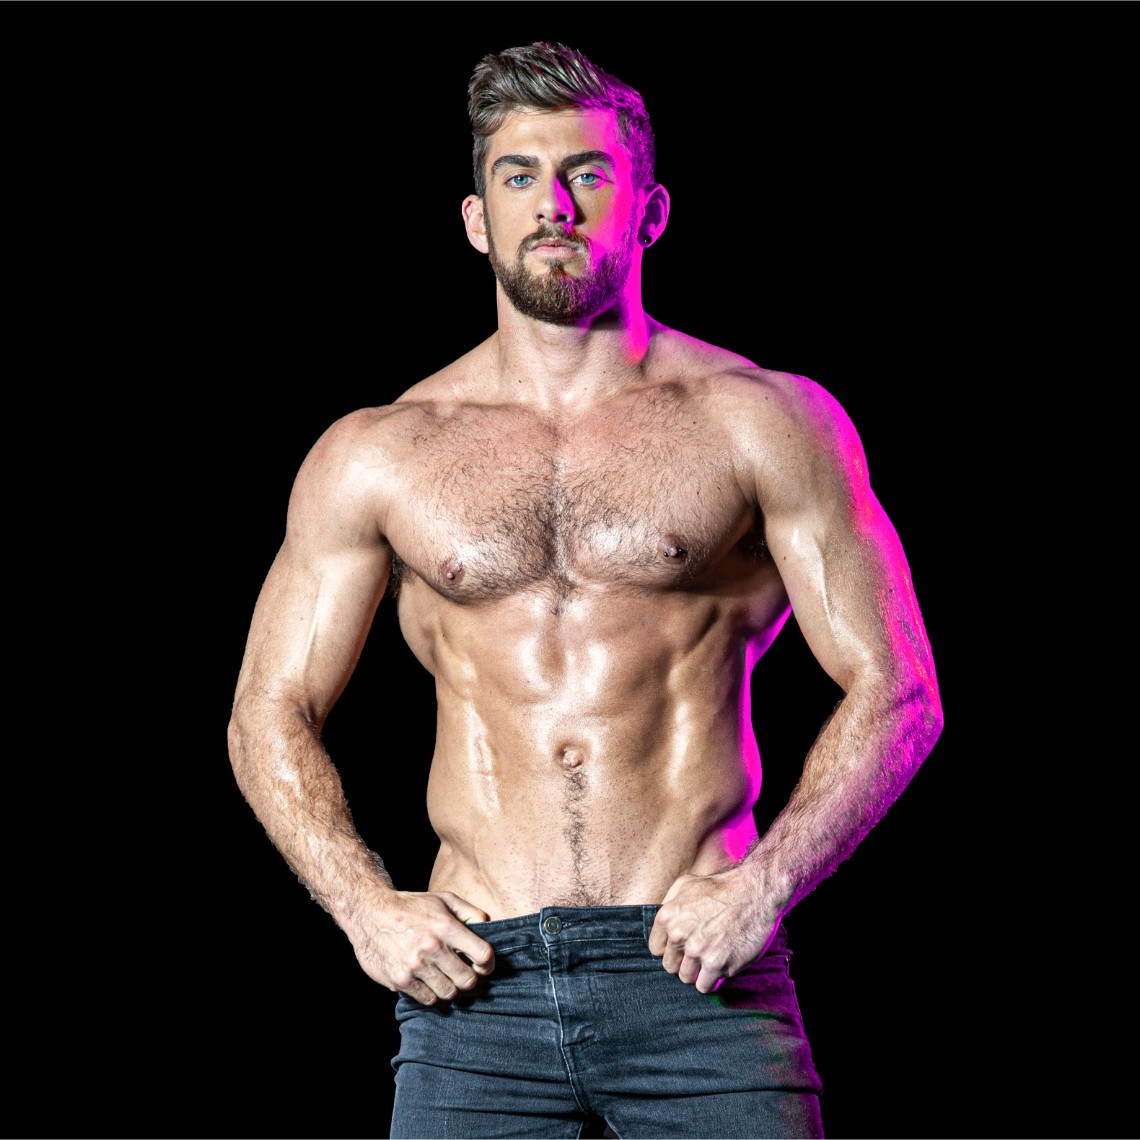 male strippers from the Dreamboys tour Zac Smith